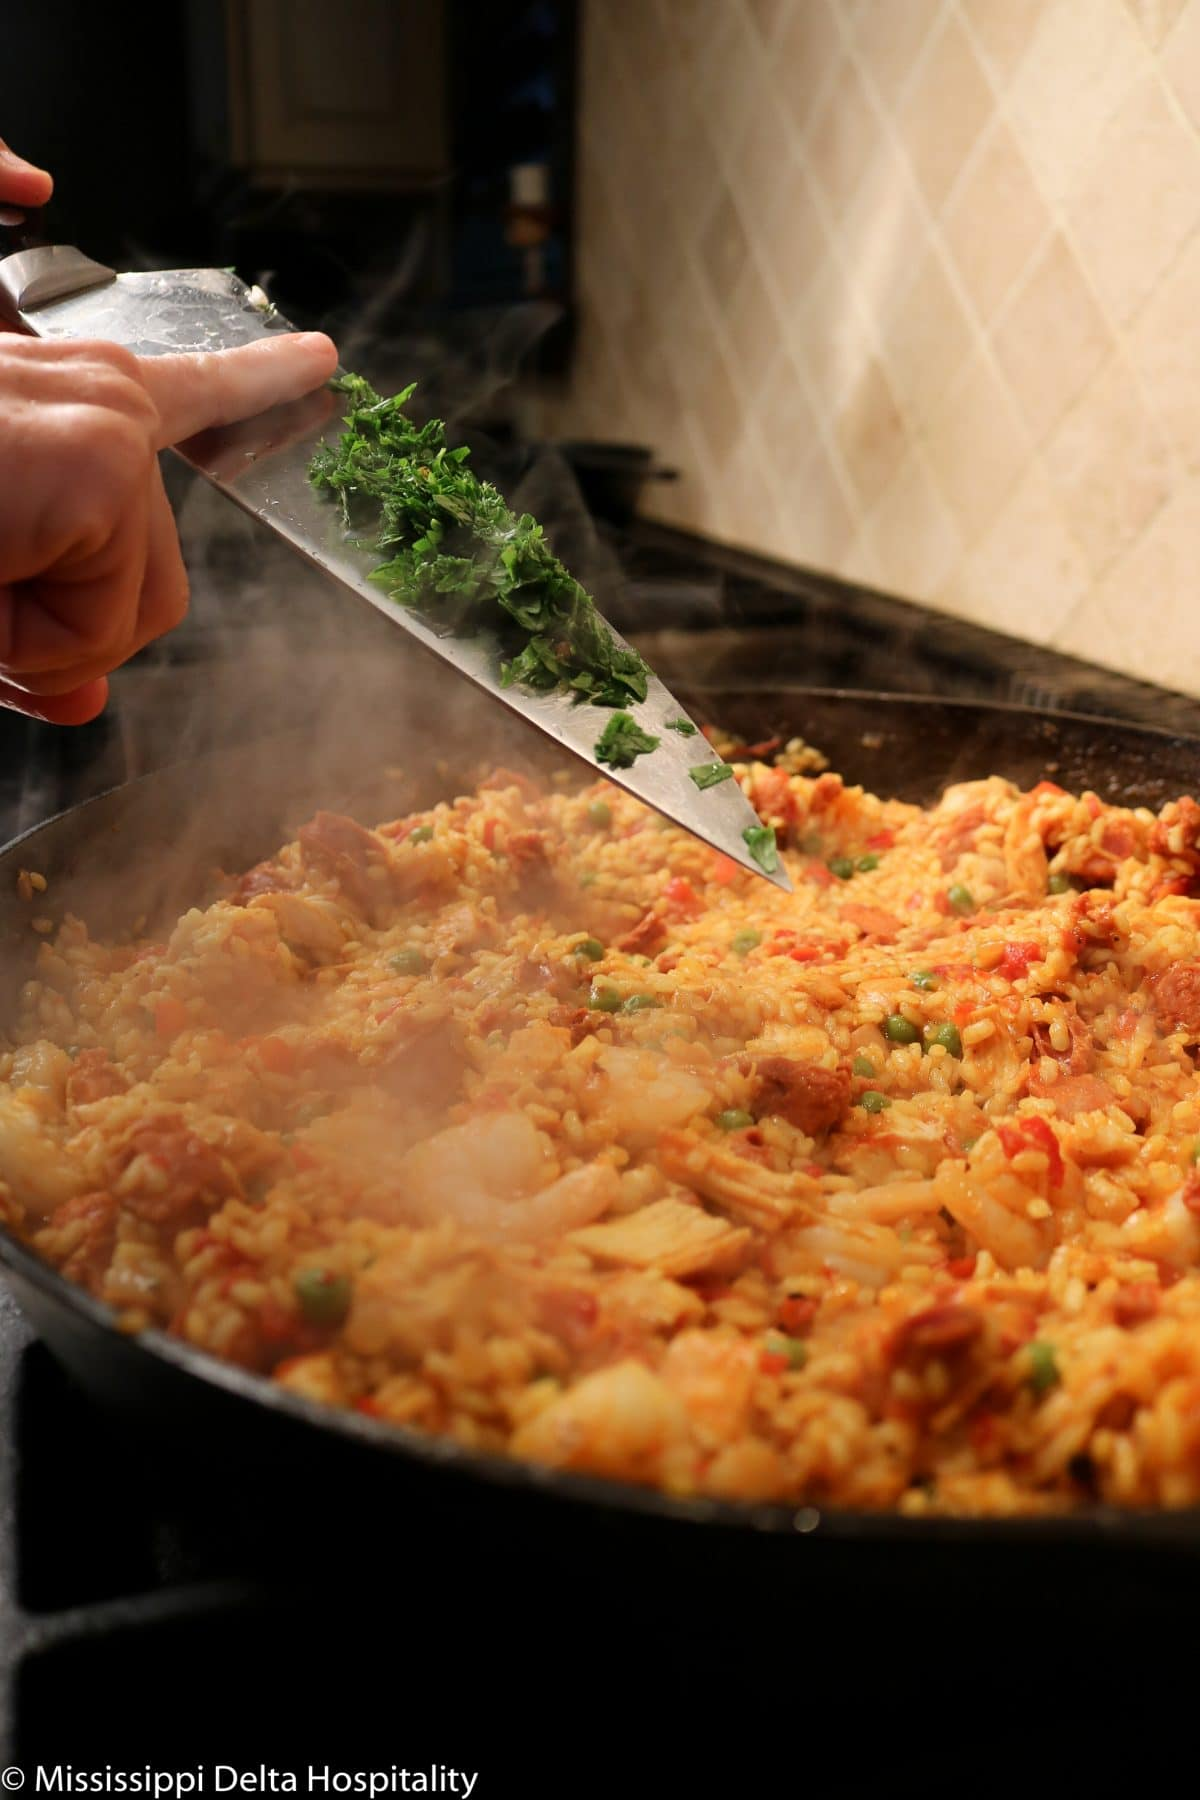 parsley being added to paella